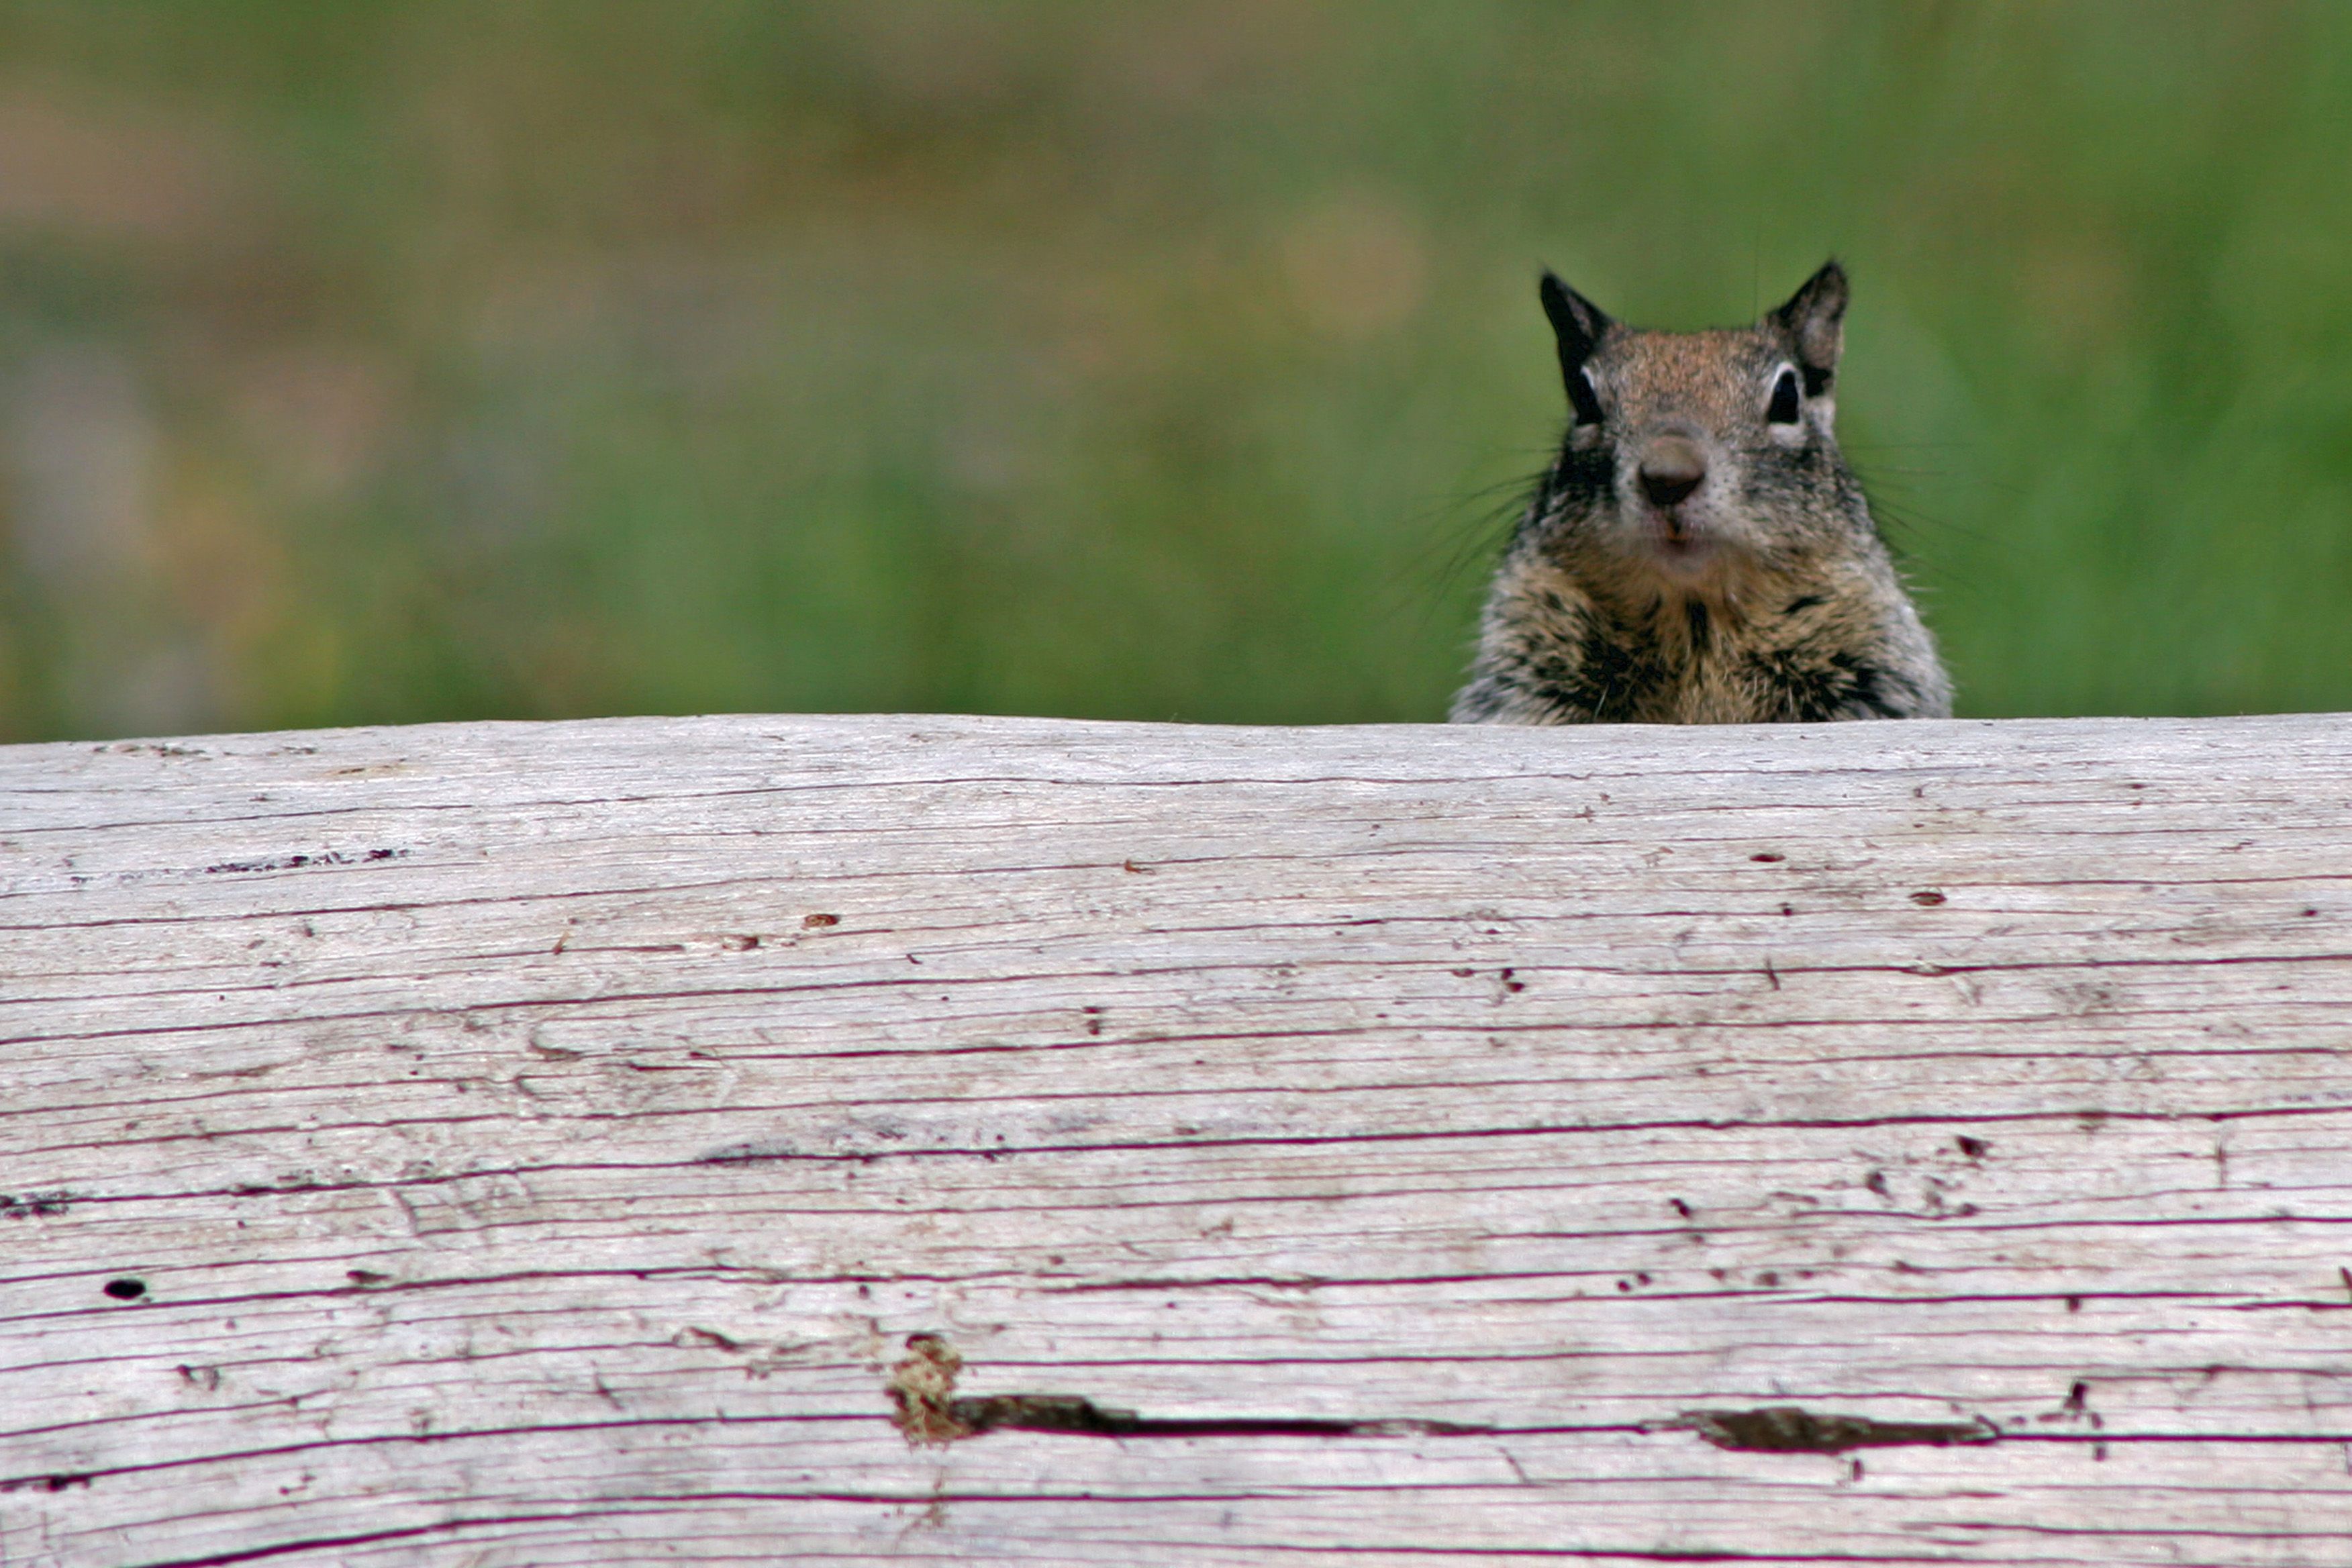 Squirrel pops up behind log to check things out